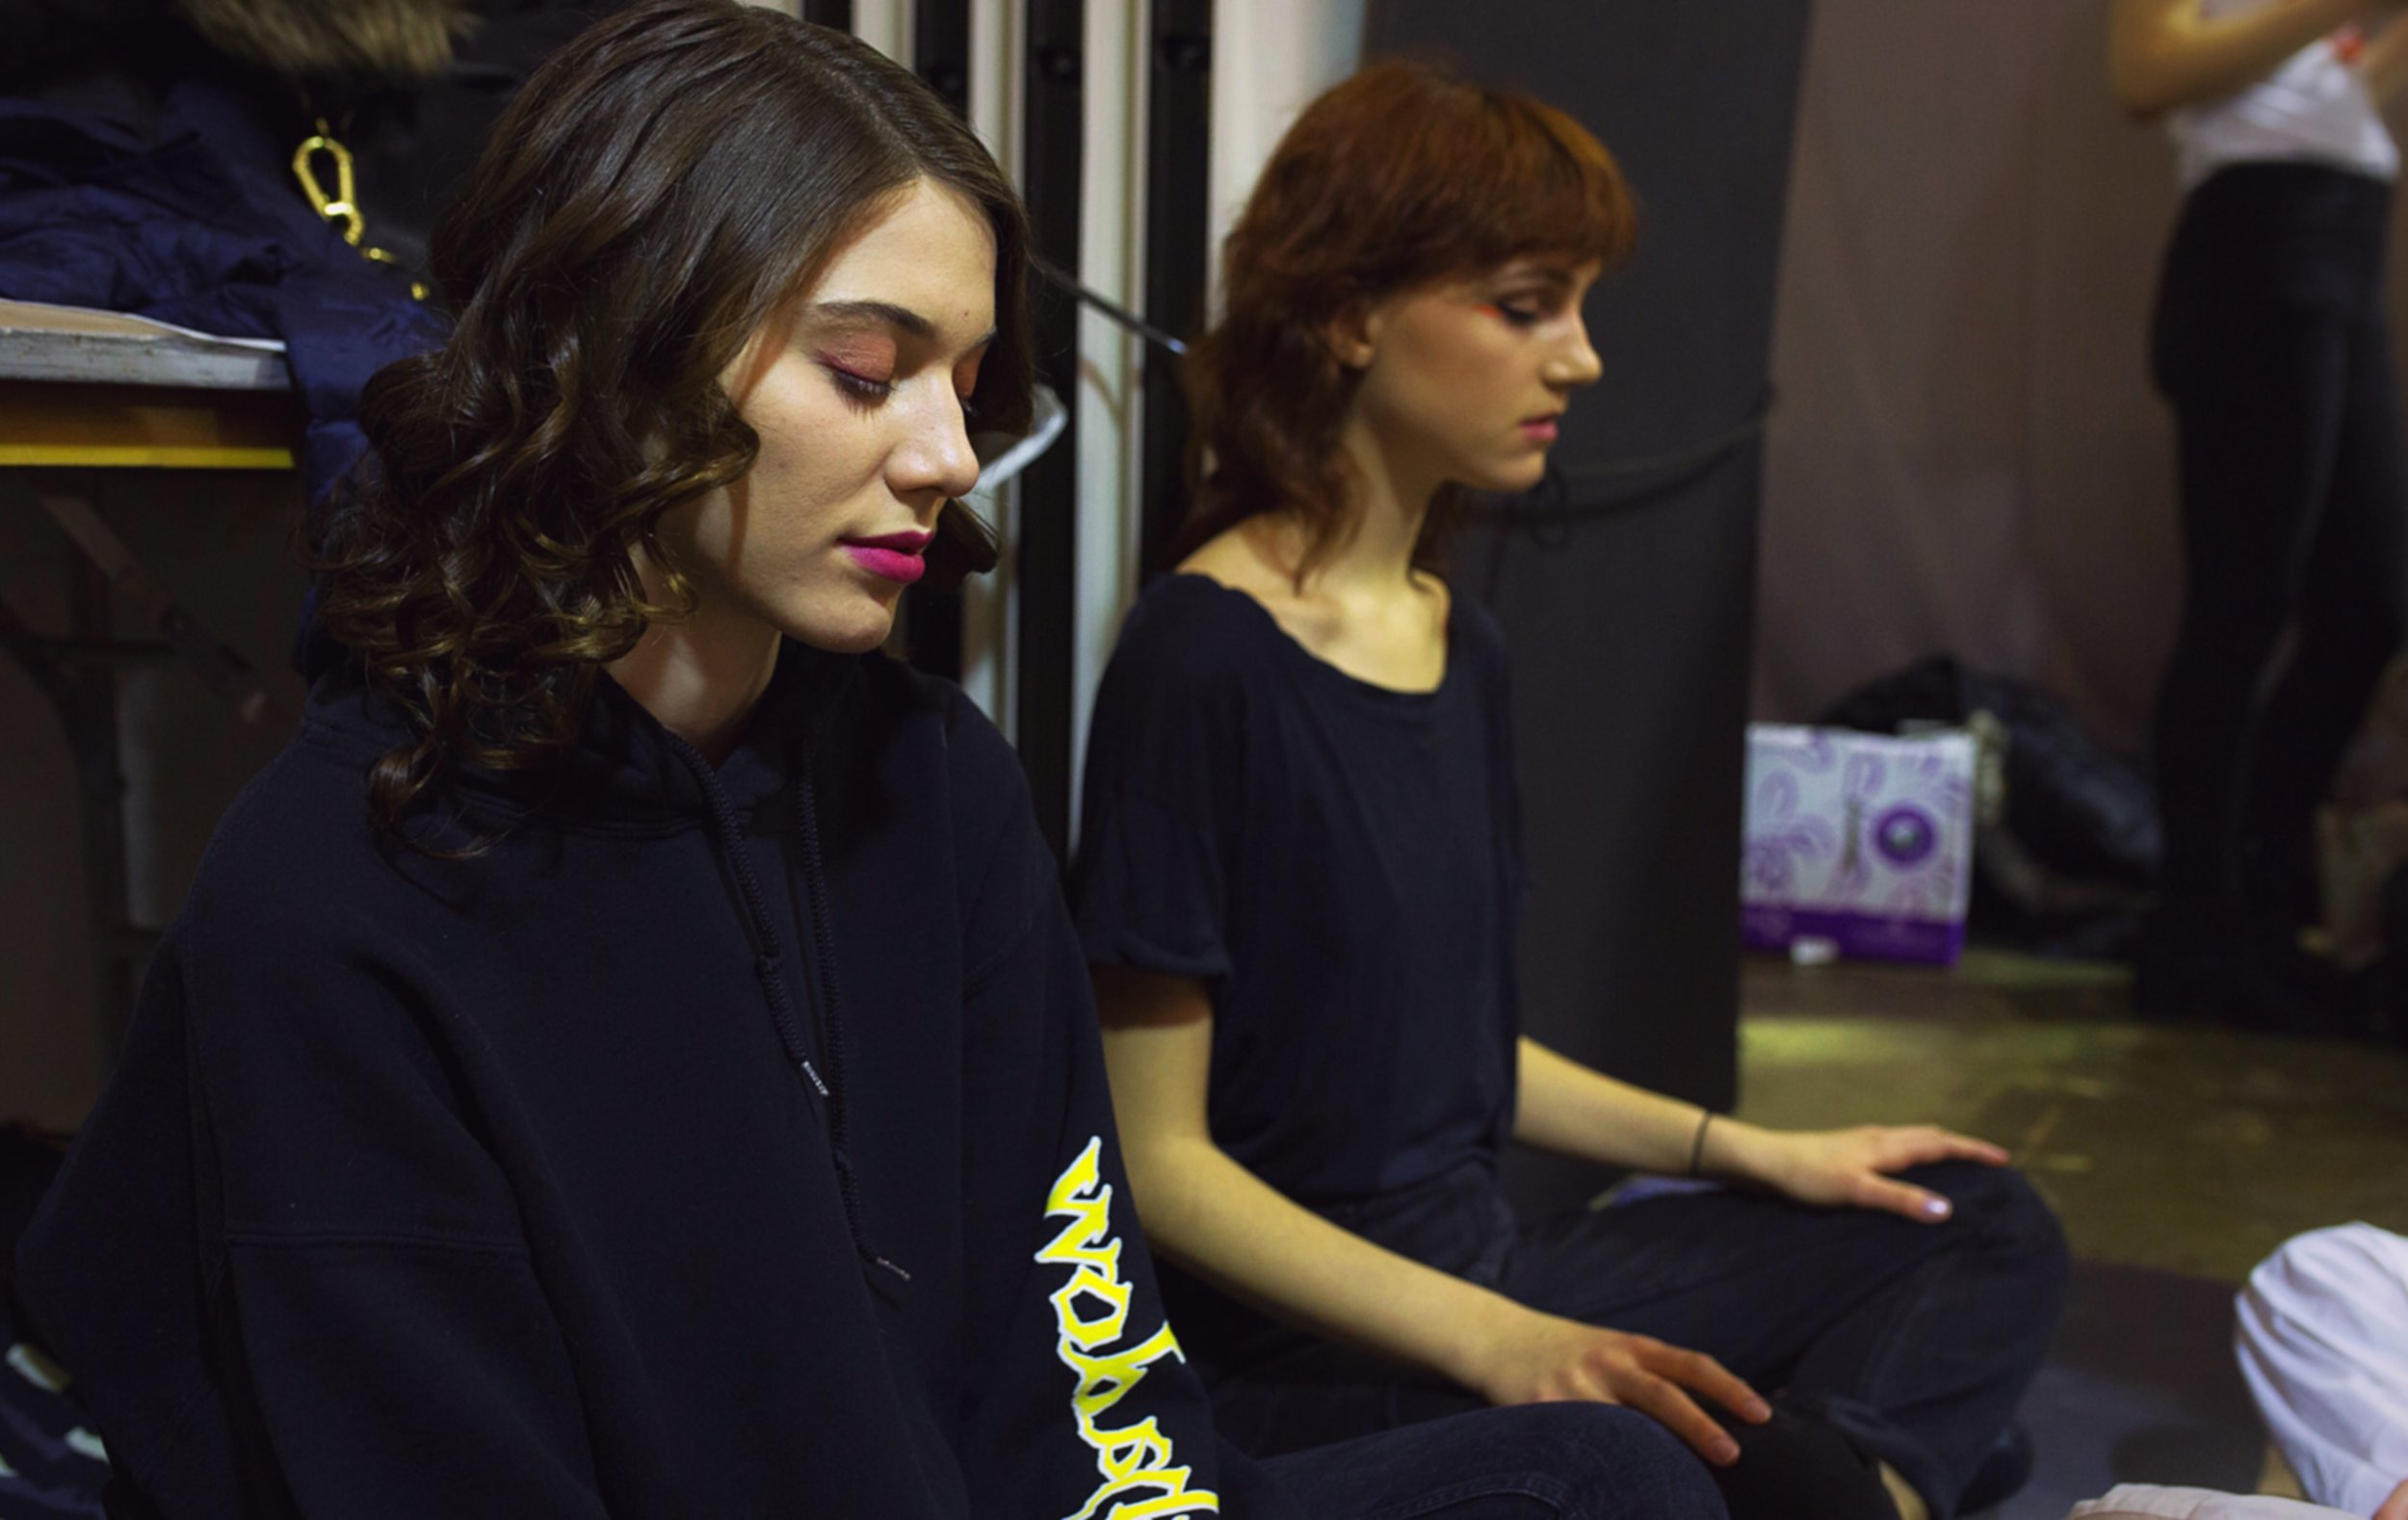 Meditation NYFW - SupeRoleModels practiced backstage meditation with models during the NYFW February, 2018